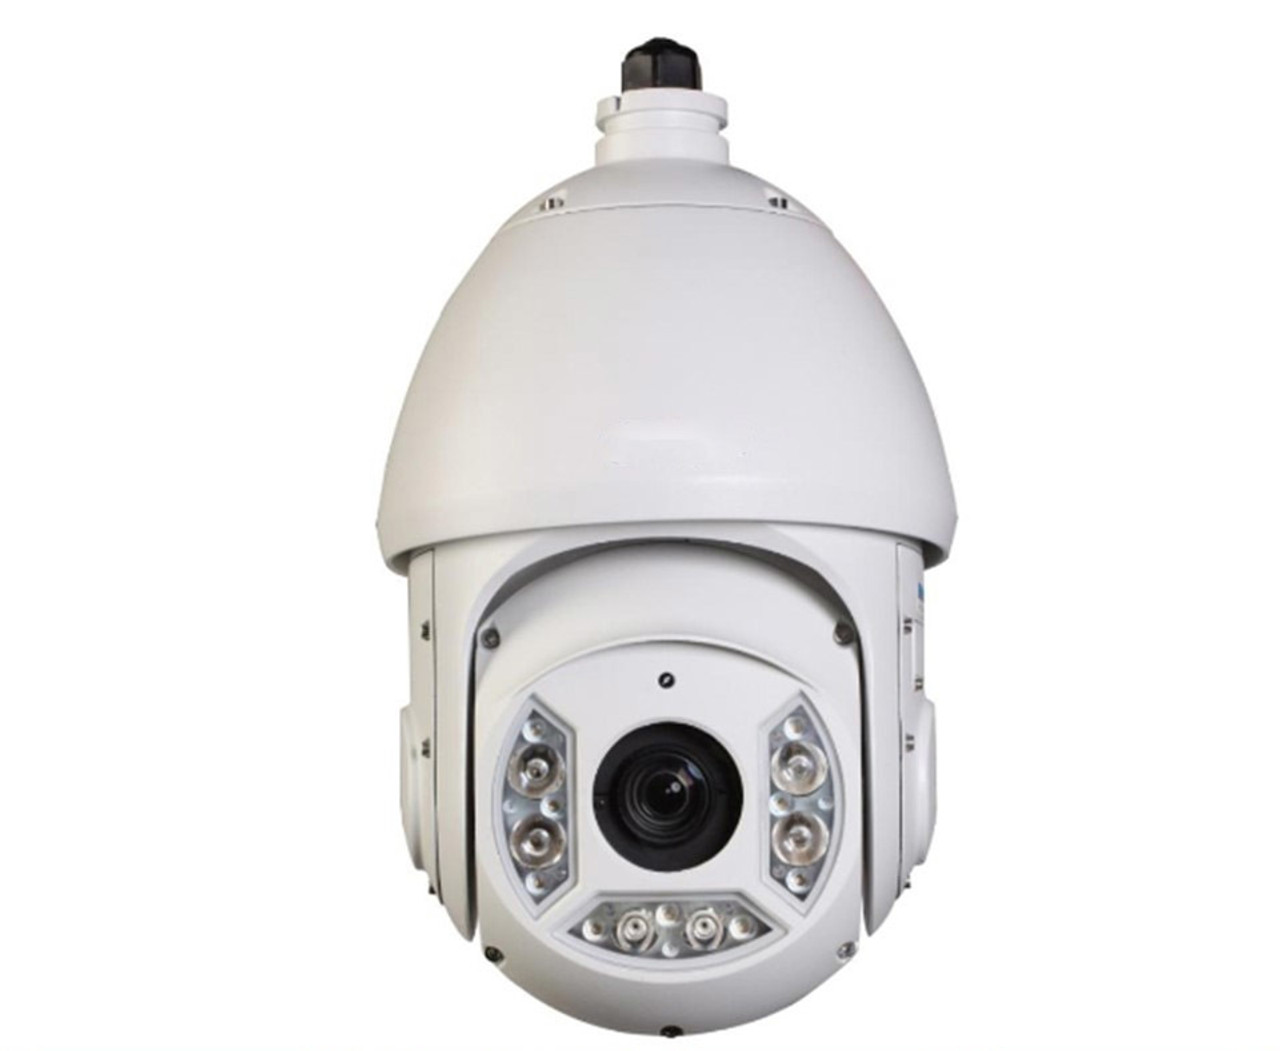 Dahua SD6C230S-HN 2MP IR Outdoor PTZ IP Security Camera